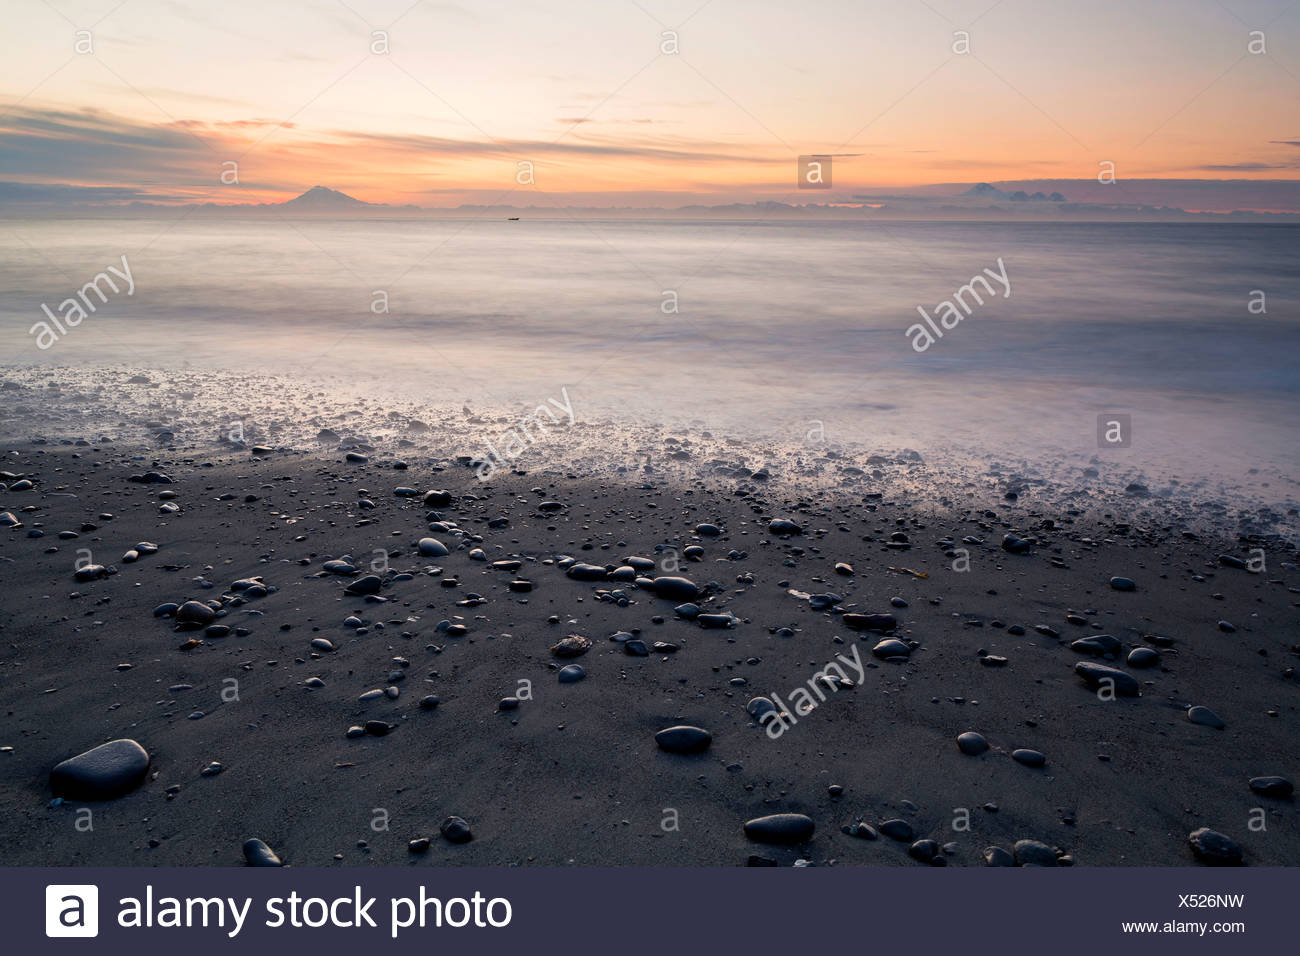 View towards volcanic mountains from the beach at Whiskey Gulch, left, Mount Iliamna, and right, Mount Redoubt, Cook Inlet - Stock Image